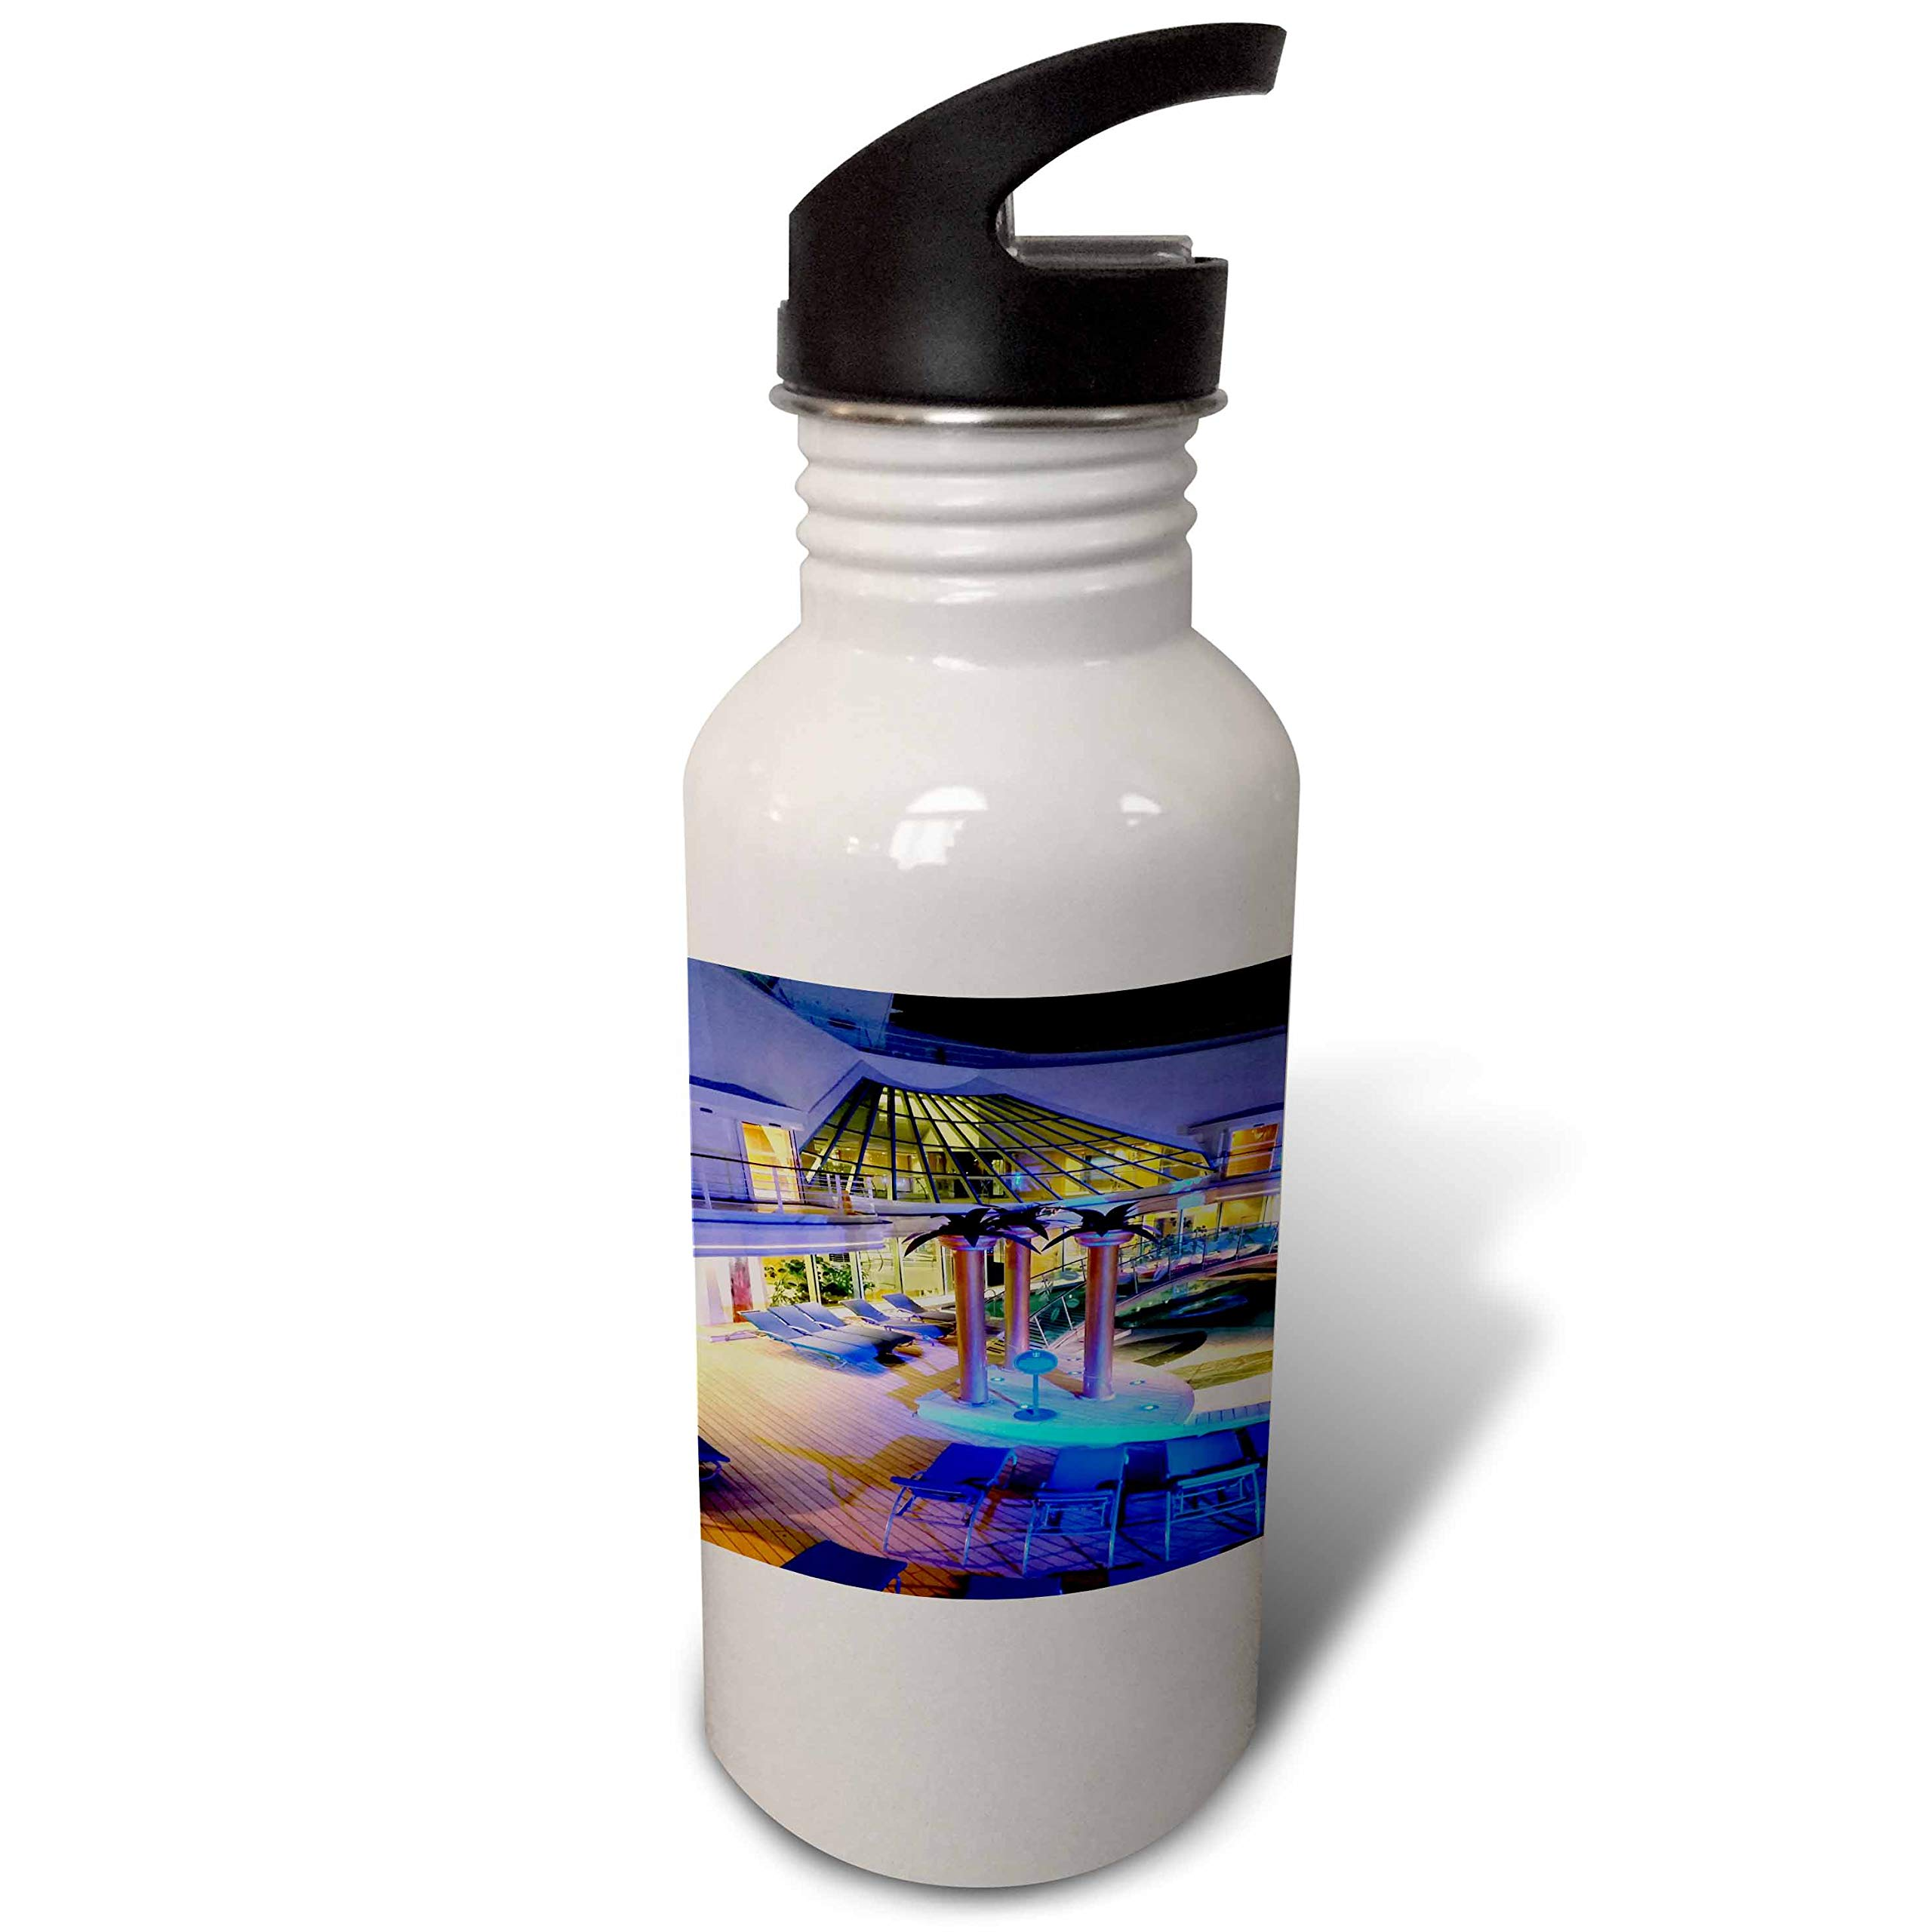 3dRose Lens Art by Florene - Cruise Ship Sites - Image of Adult Pool Area with Spa - Flip Straw 21oz Water Bottle (wb_291436_2)